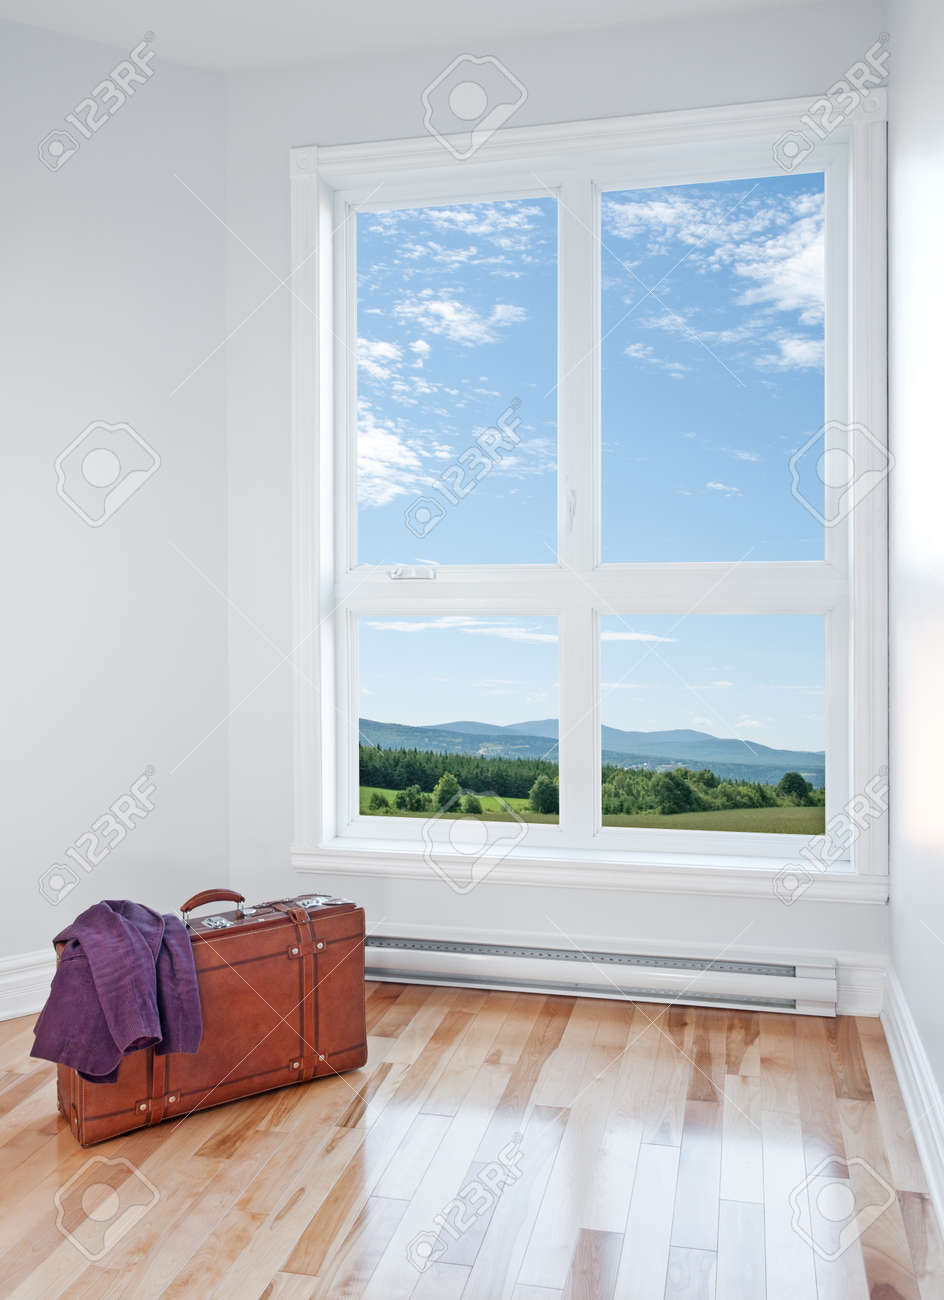 Just arrived  Retro suitcase in an empty room with beautiful view Stock Photo - 15866589